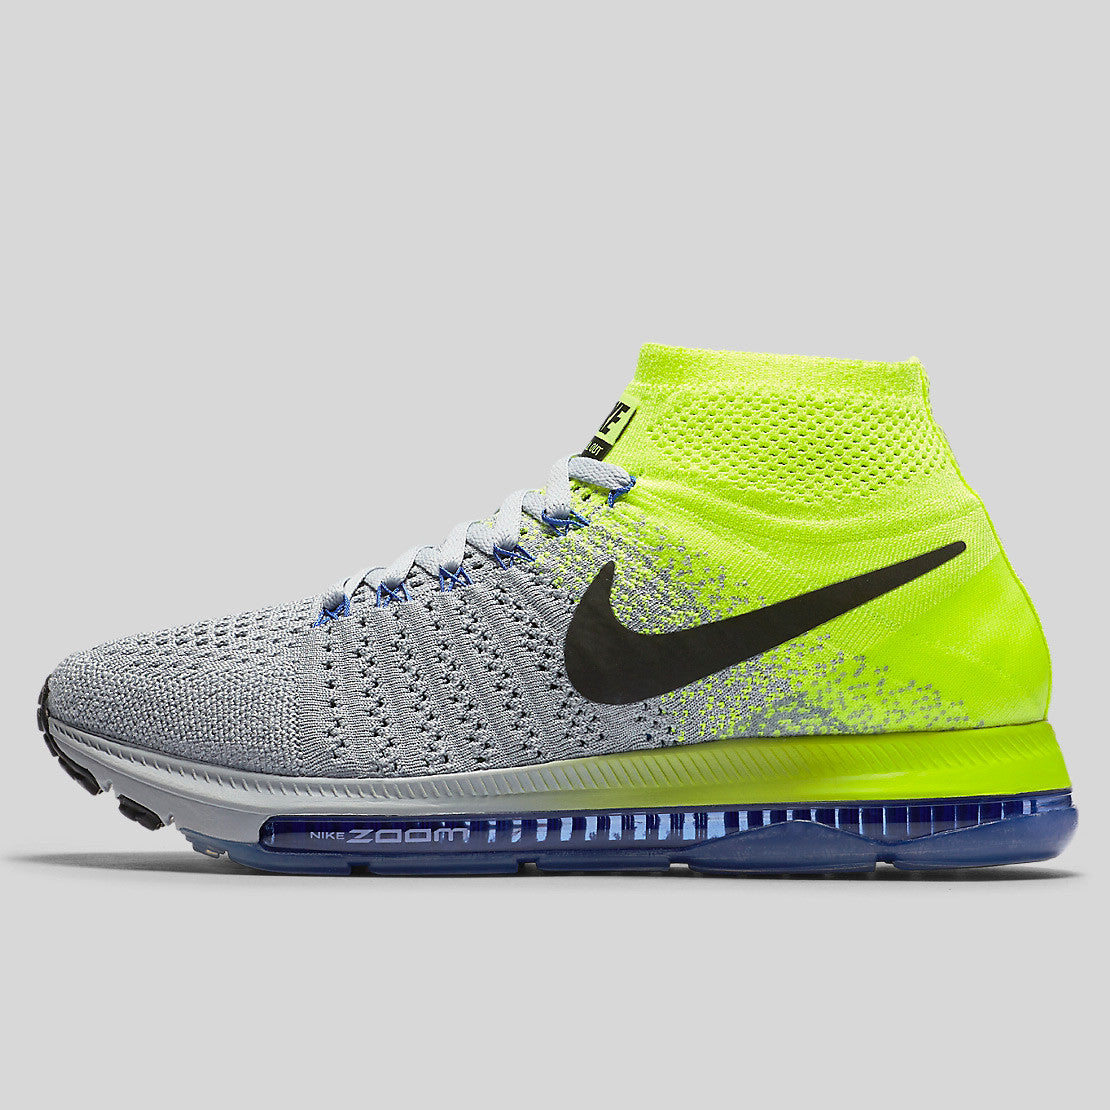 quality design 2956d 1d289 Nike Wmns Zoom All Out Flyknit Wolf Grey Black Volt Paramount Blue  (845361-007